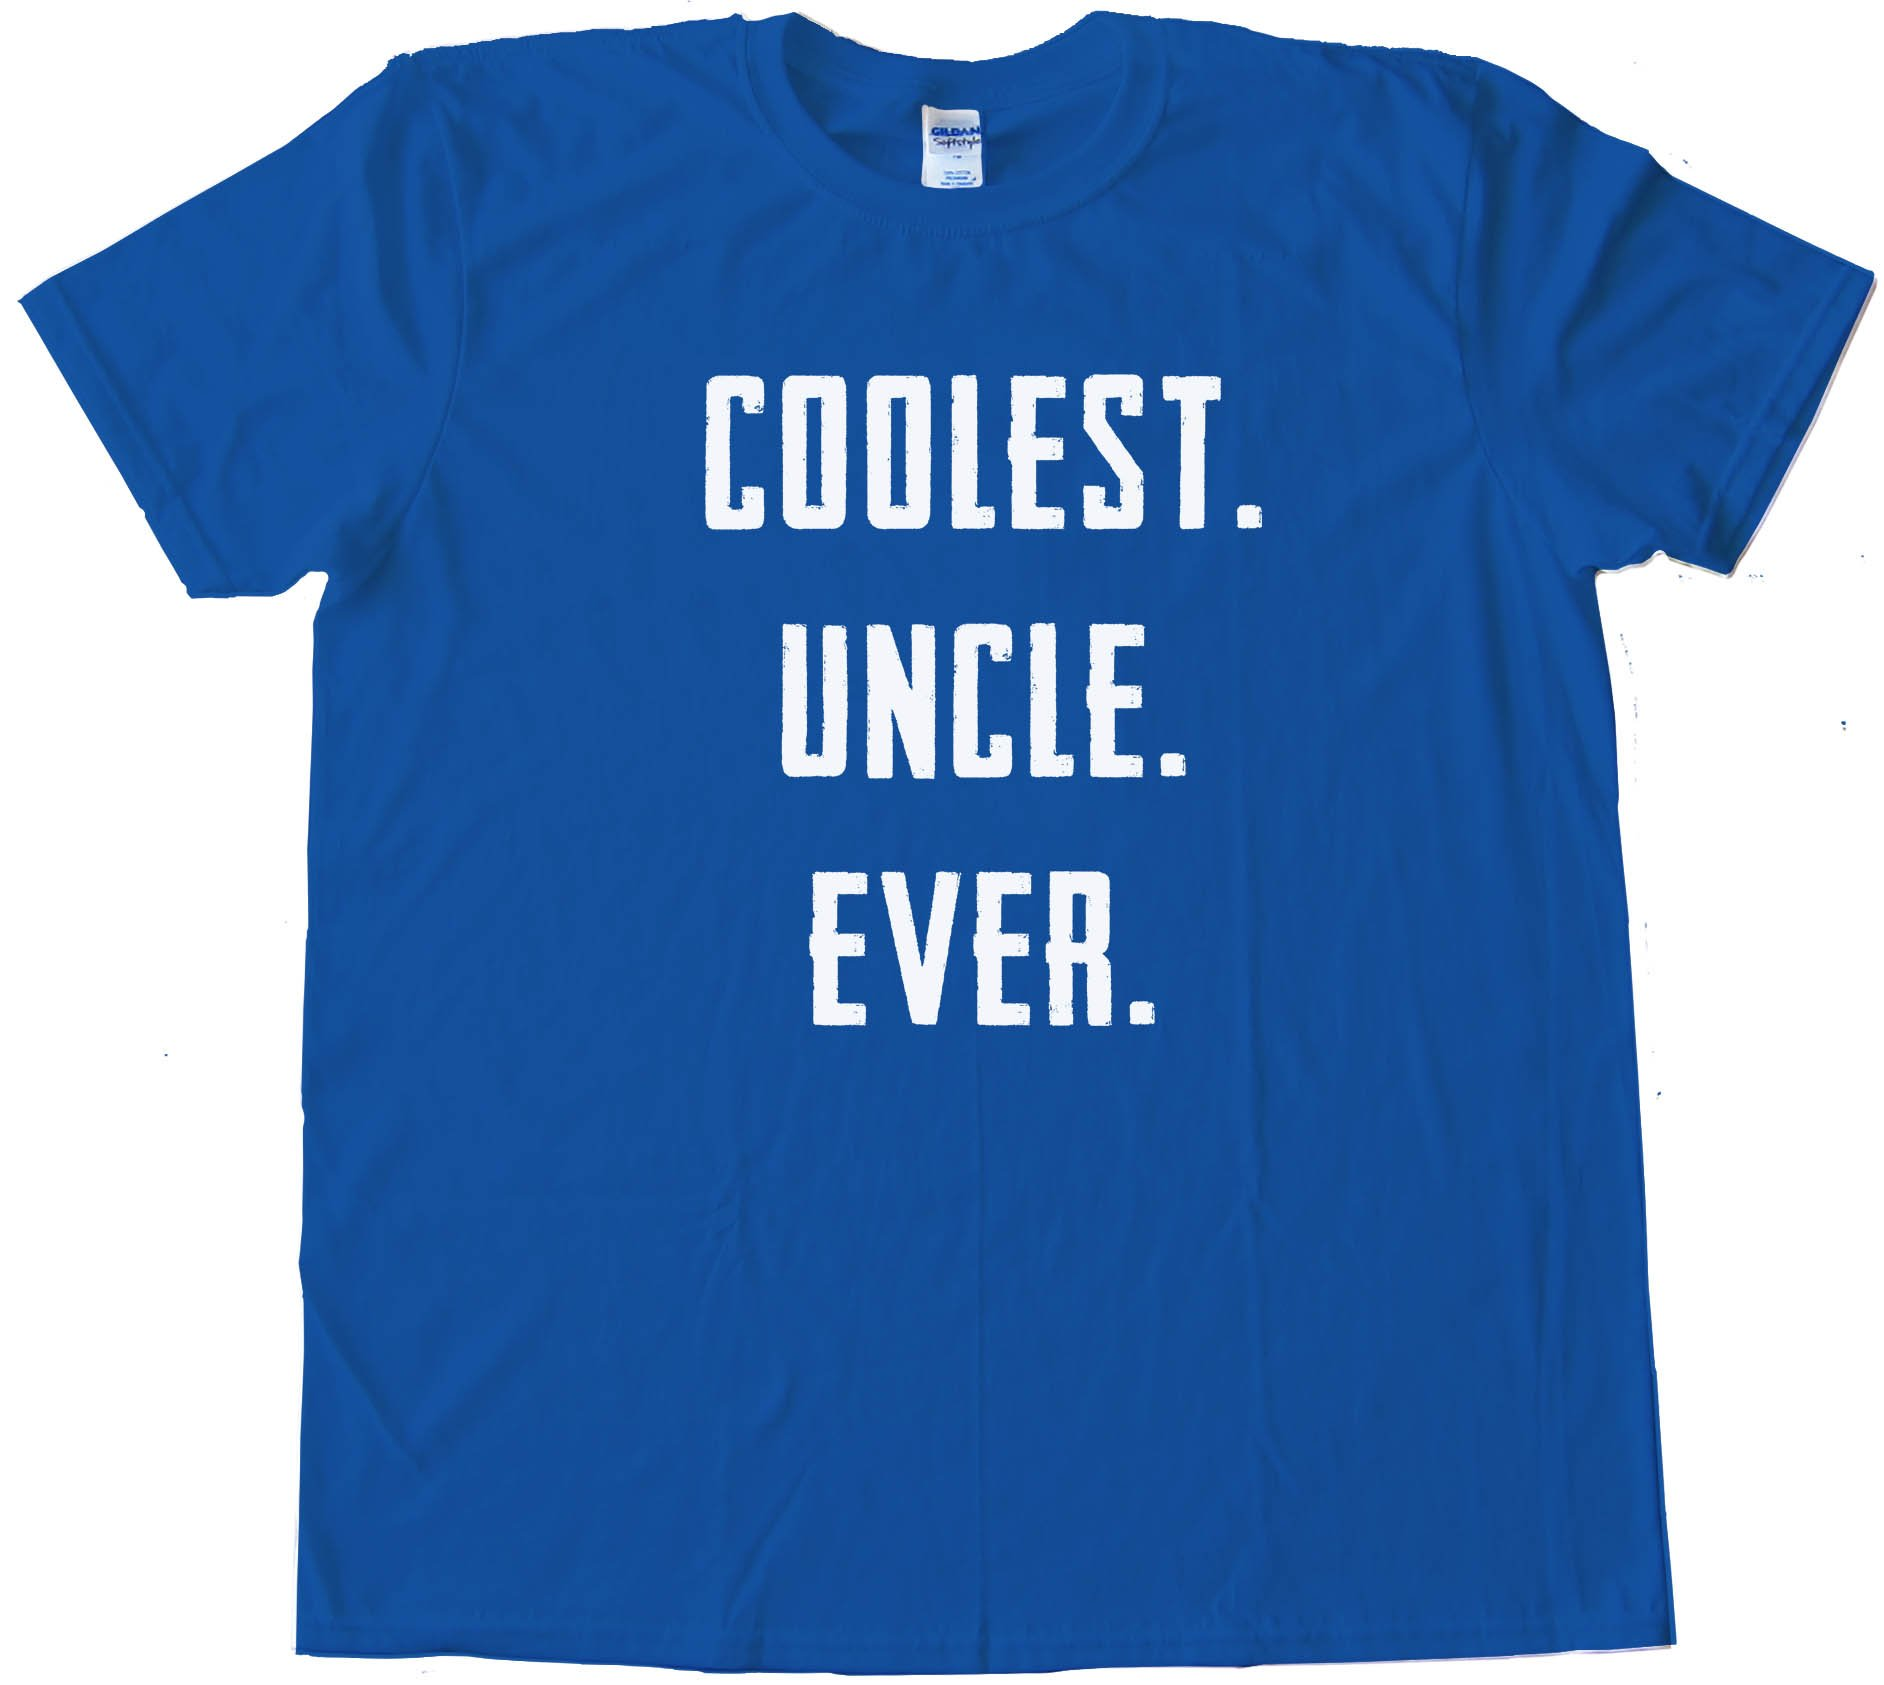 Coolest. Uncle. Ever. - Tee Shirt